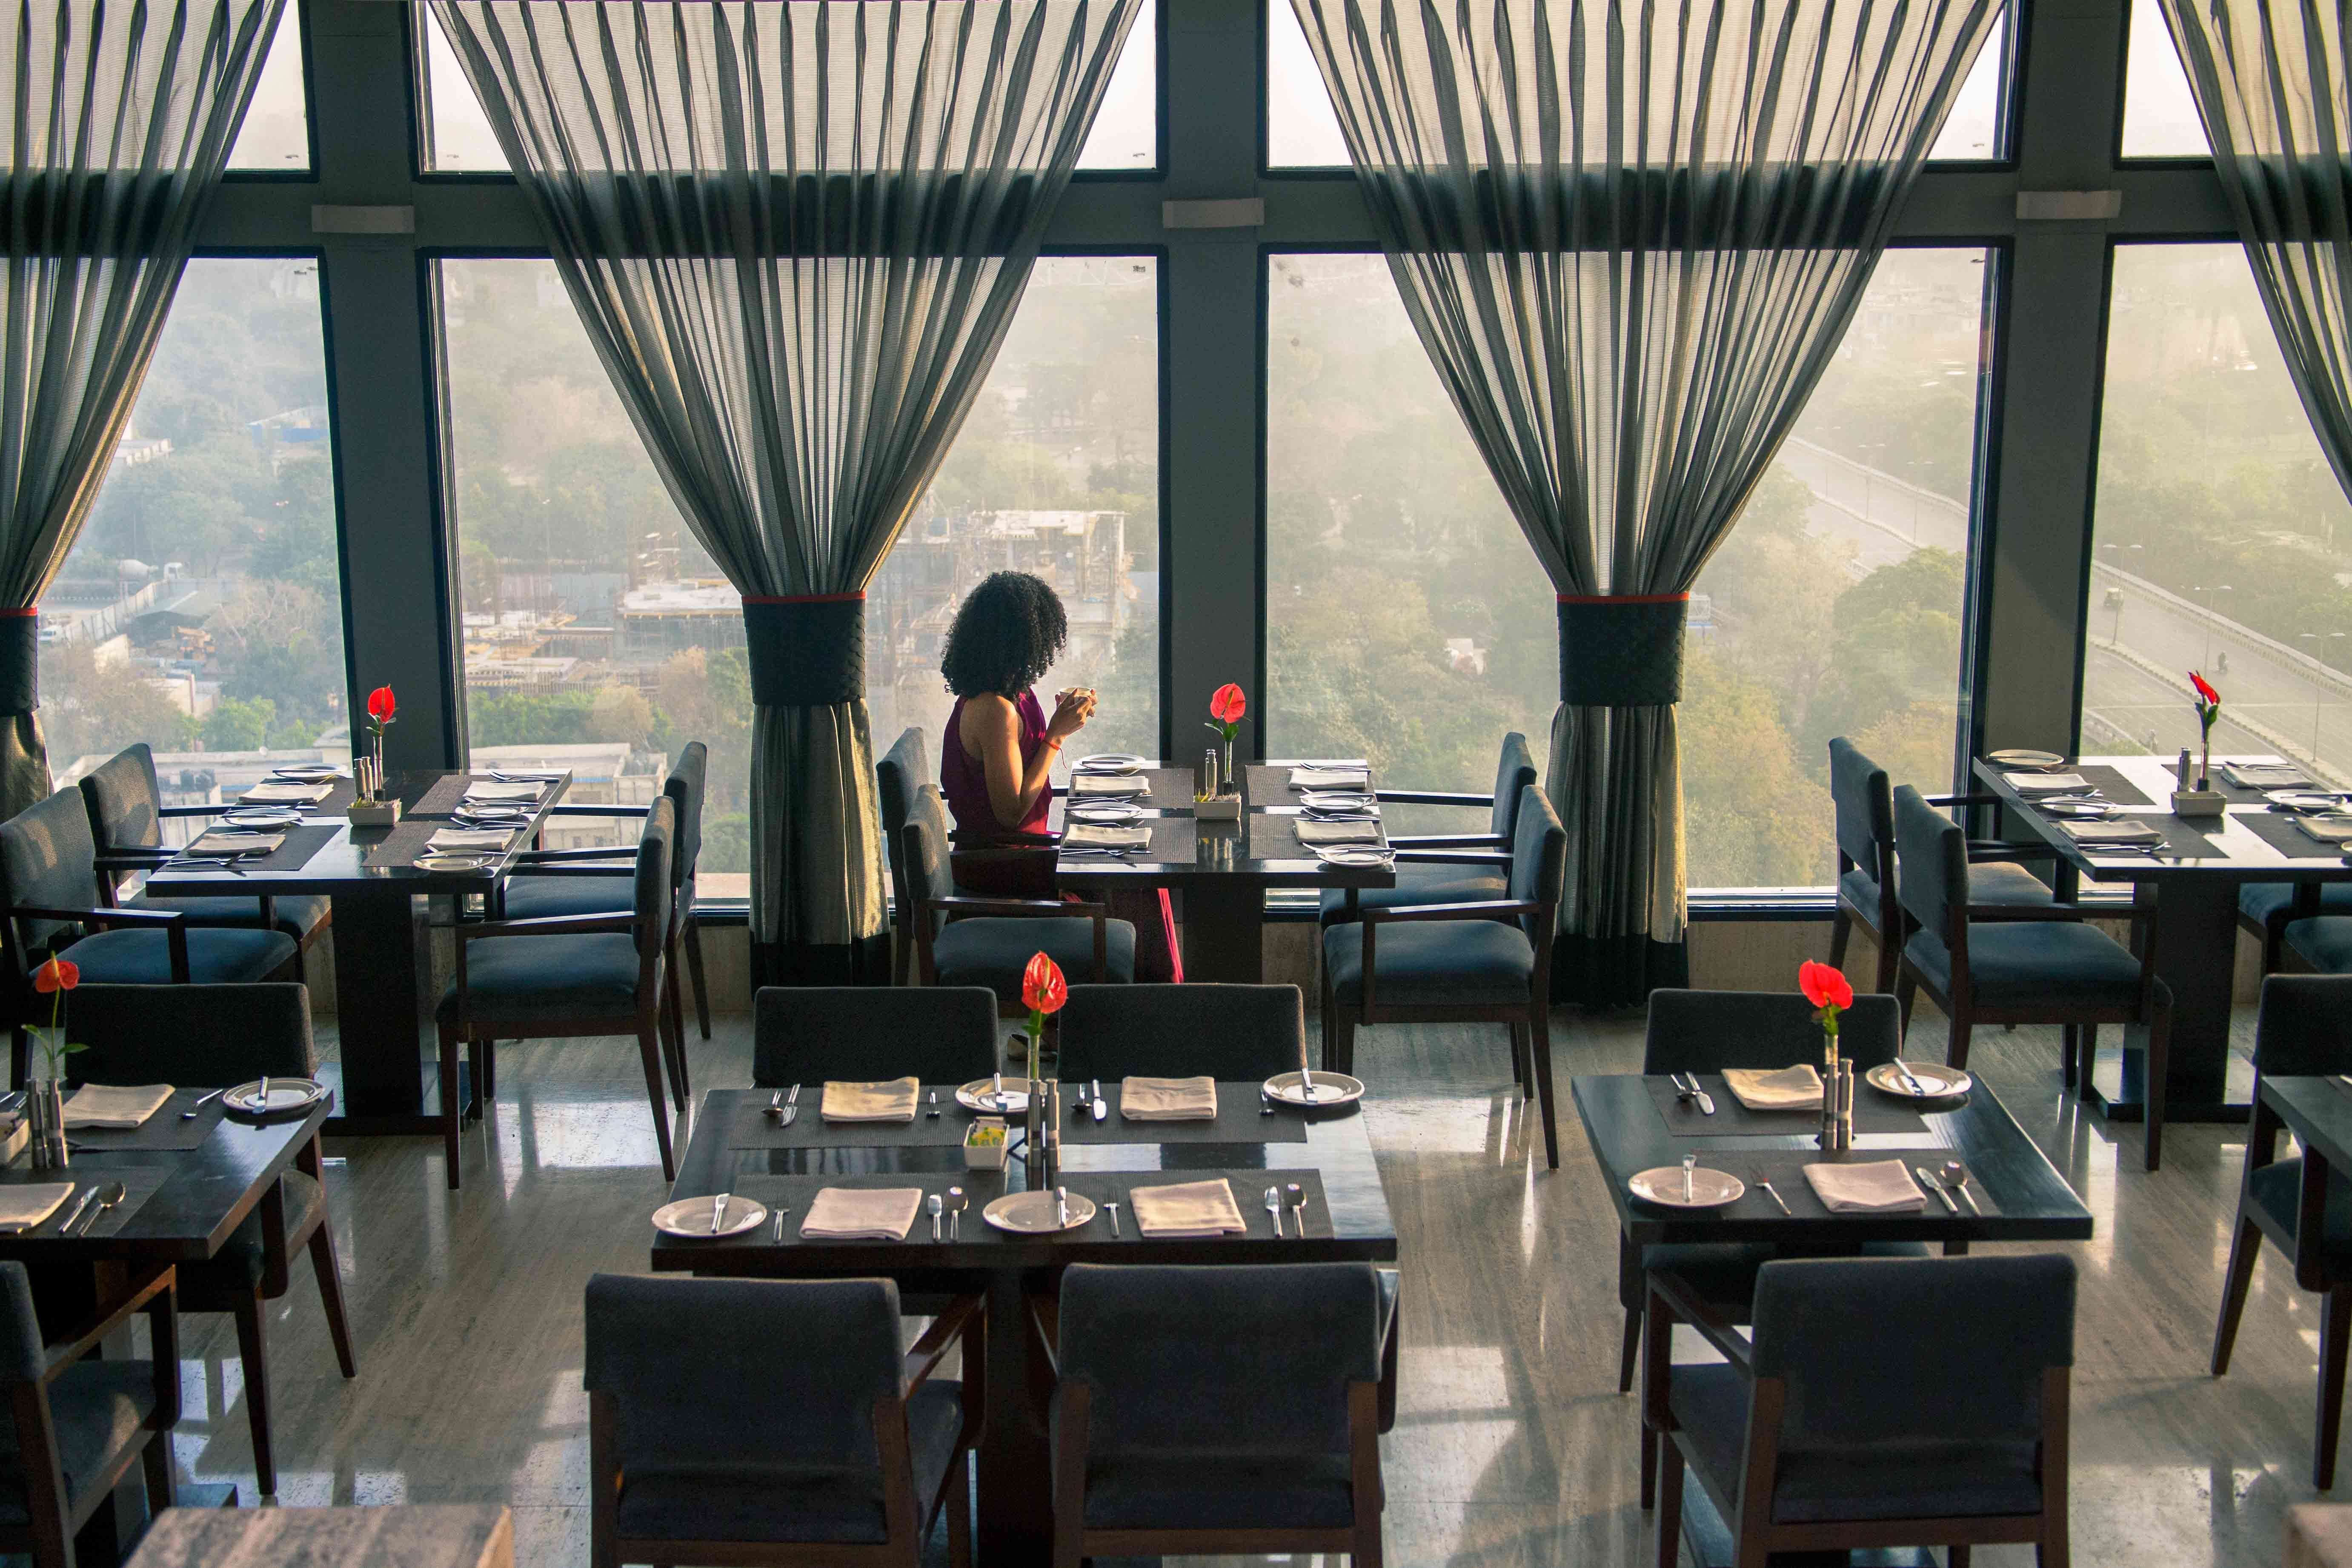 Luxury Hotel Review: The LaLiT Hotel New Delhi, India